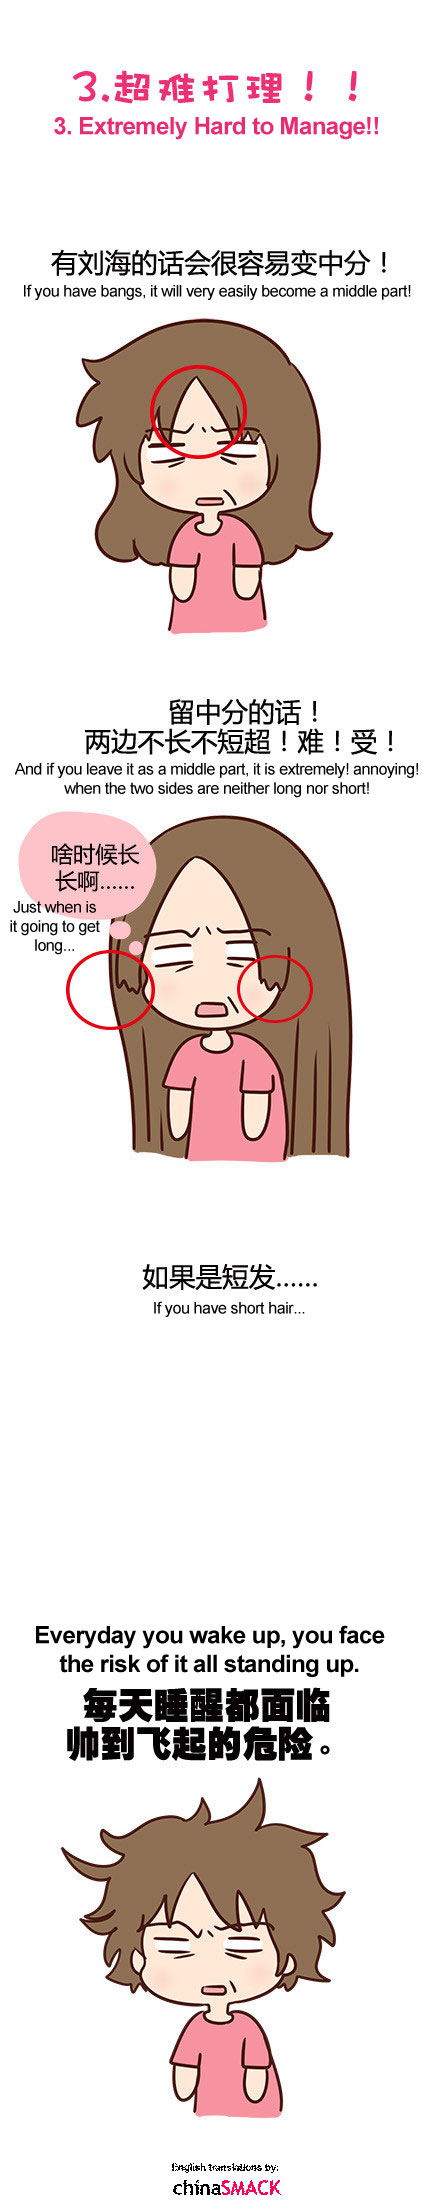 chinese-weibo-greatanny-hair-troubles-annoyances-for-women-03-english-translation